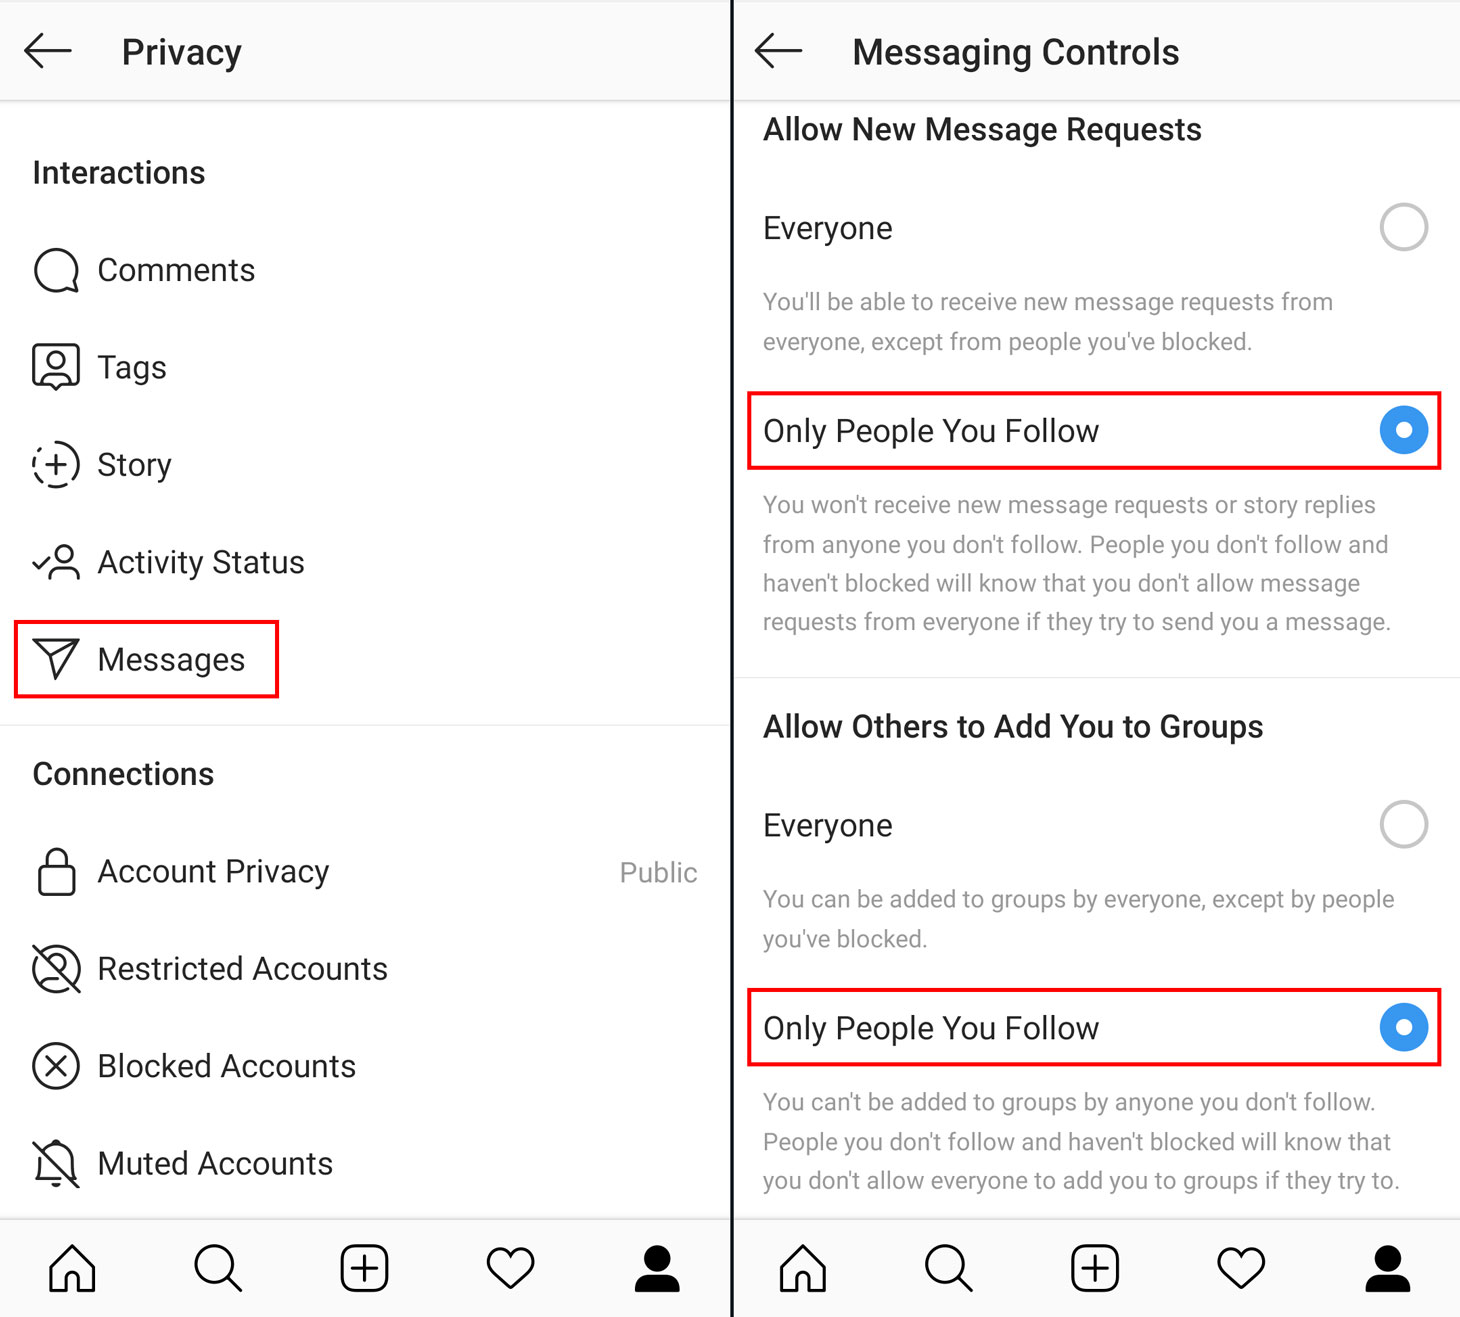 Hot to block spam in Instagram's direct messages and keep from being added to random groups